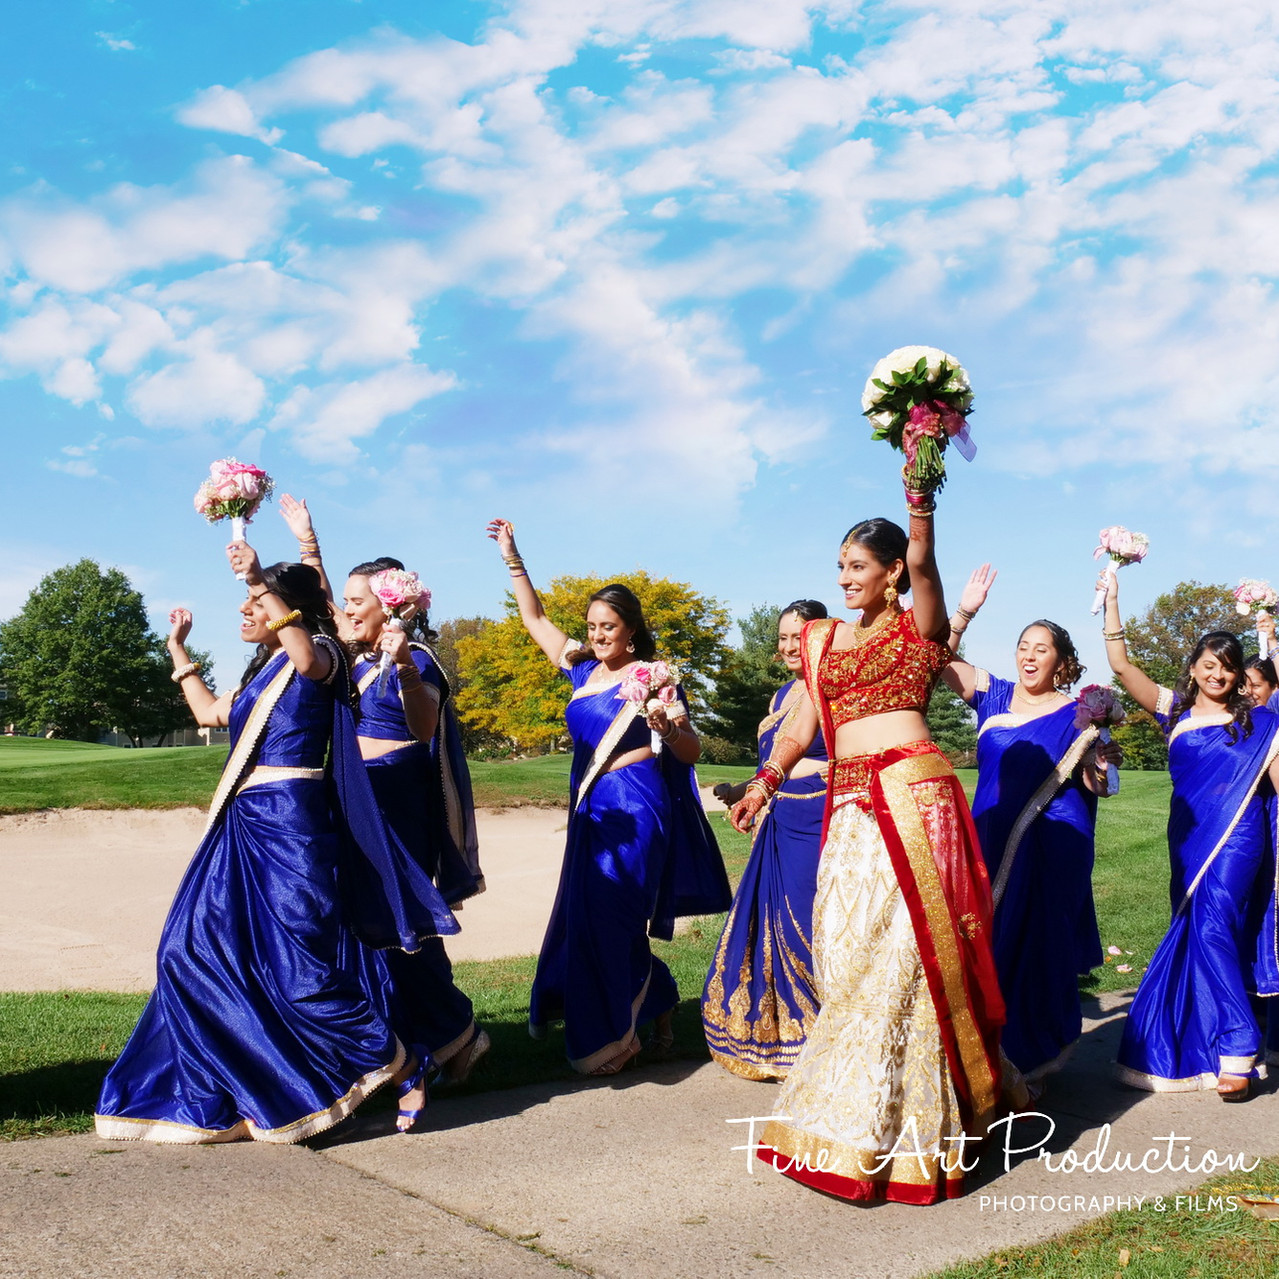 Pine-Crest-Country-Club-Indian-Wedding-Photography-Fine-Art-Production-Amish-Thakkar_38